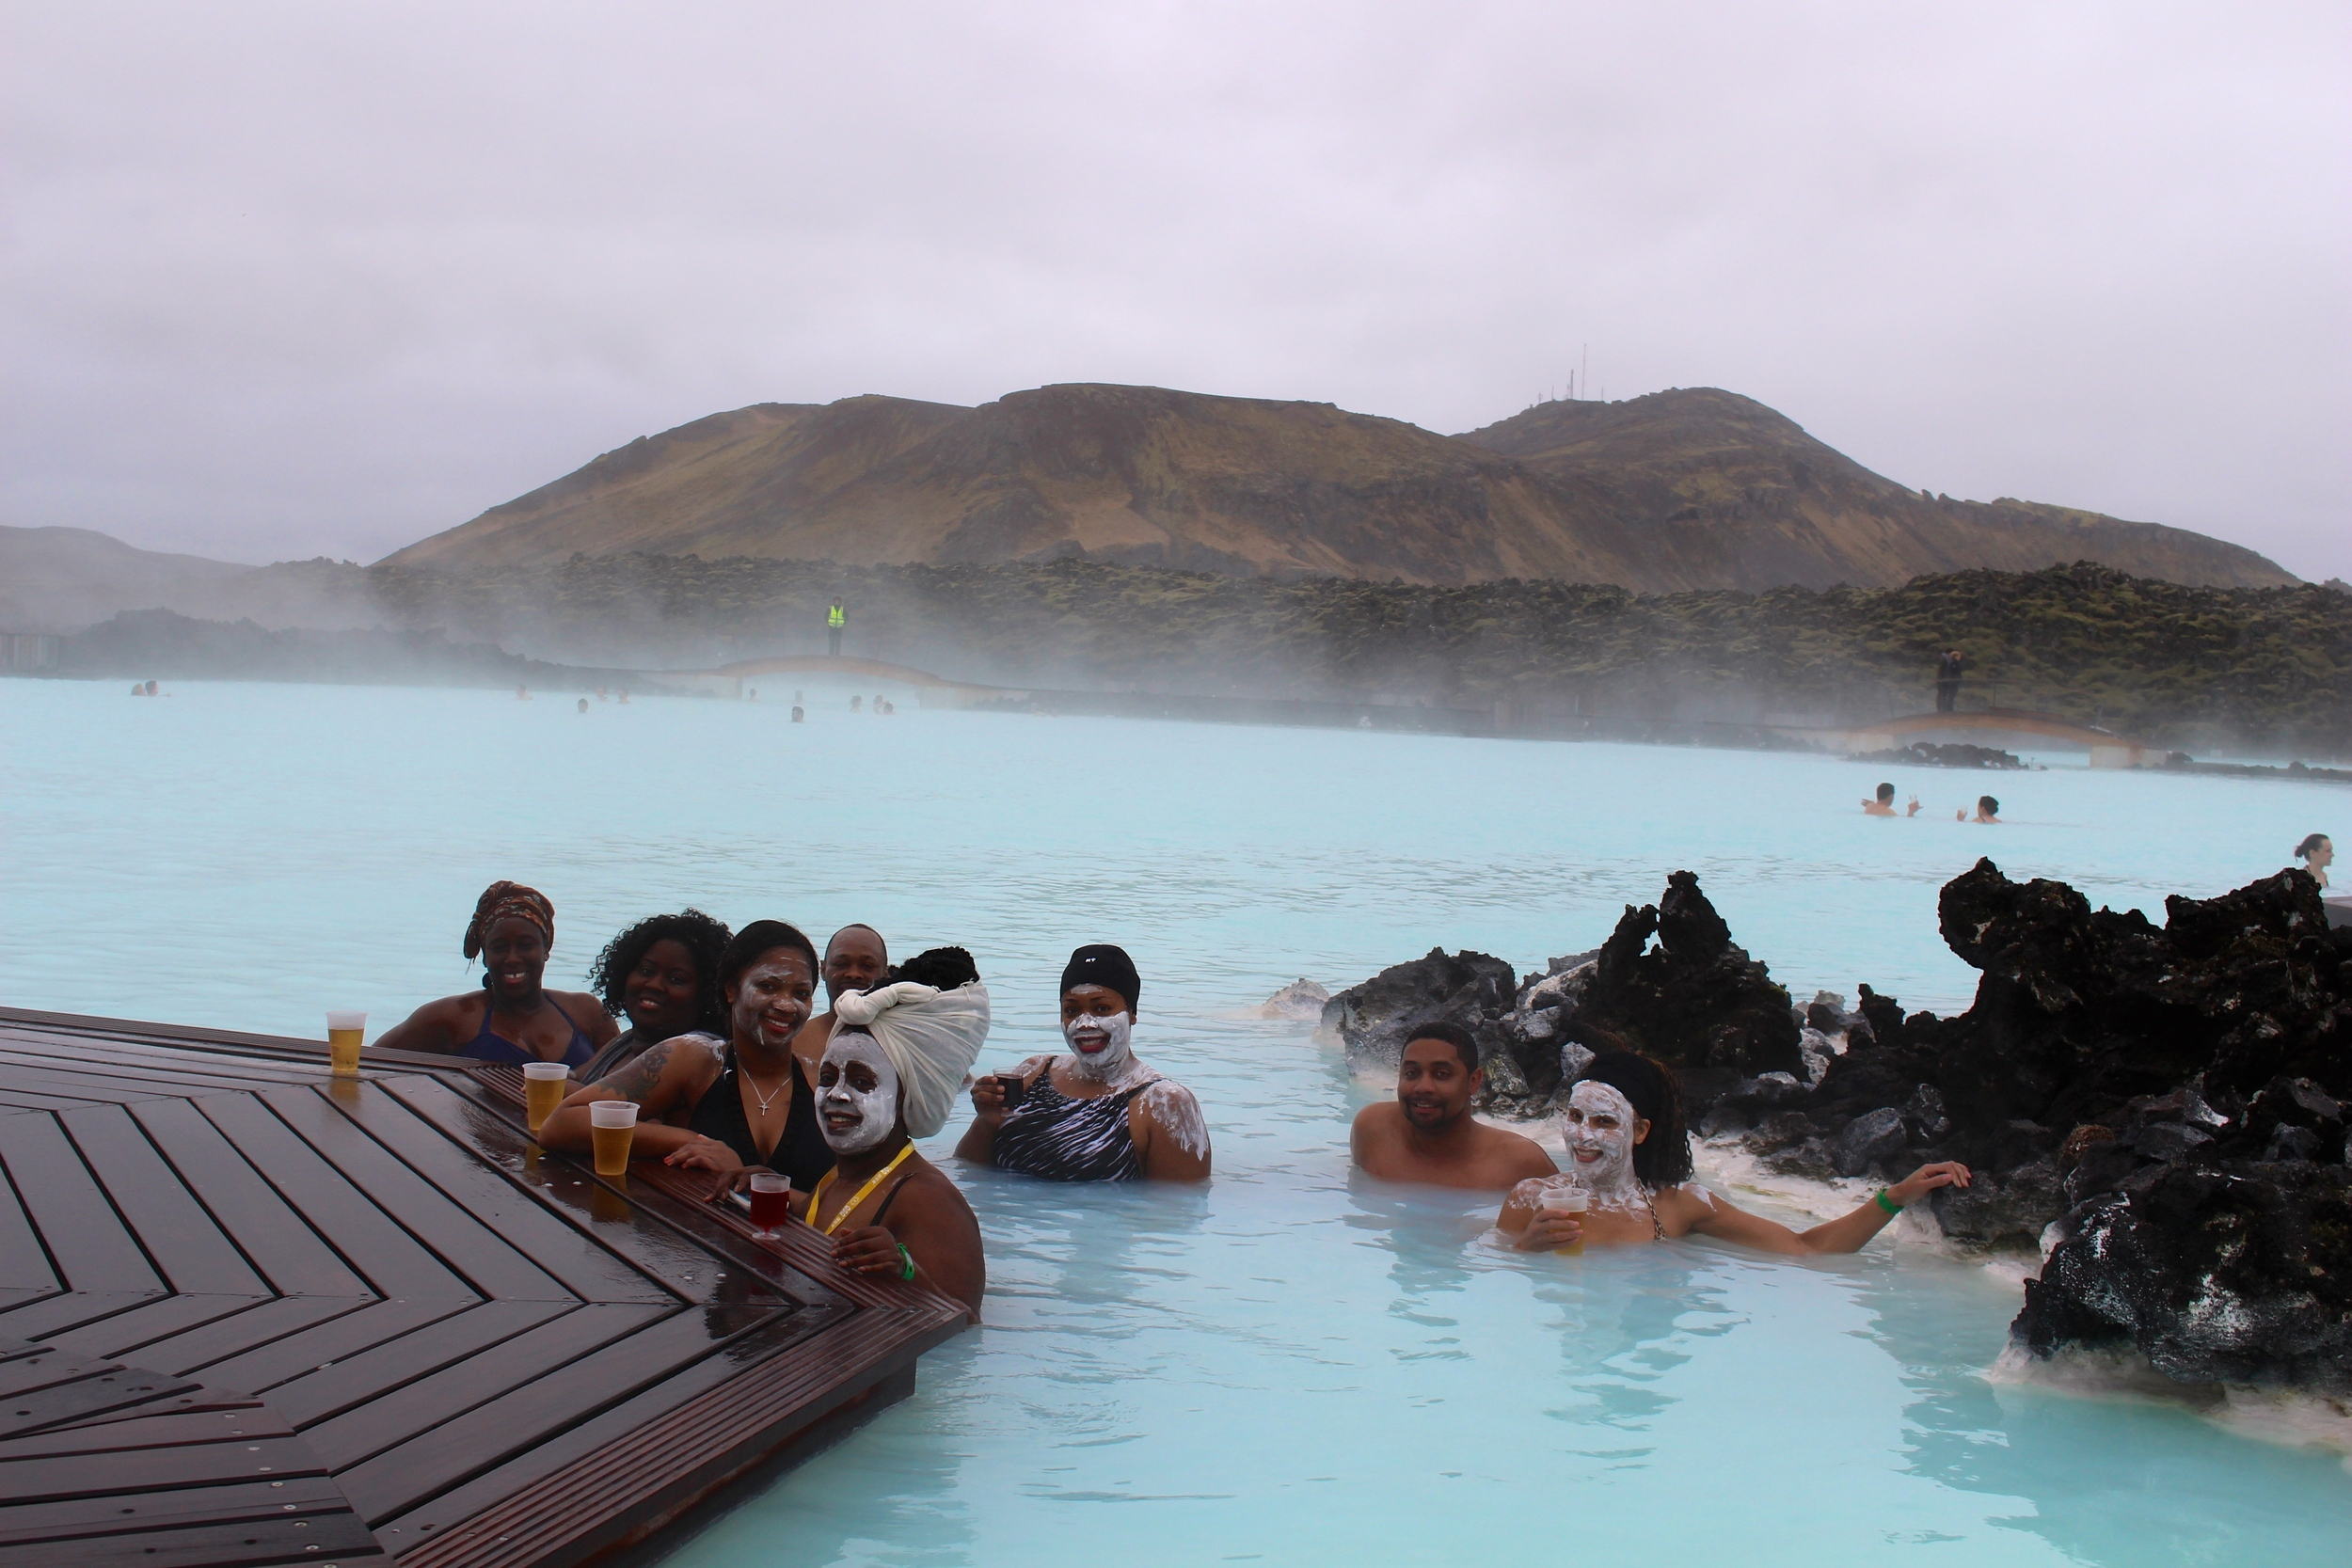 The #IcelandBlackout takeover of the Blue Lagoon Geothermal Spa